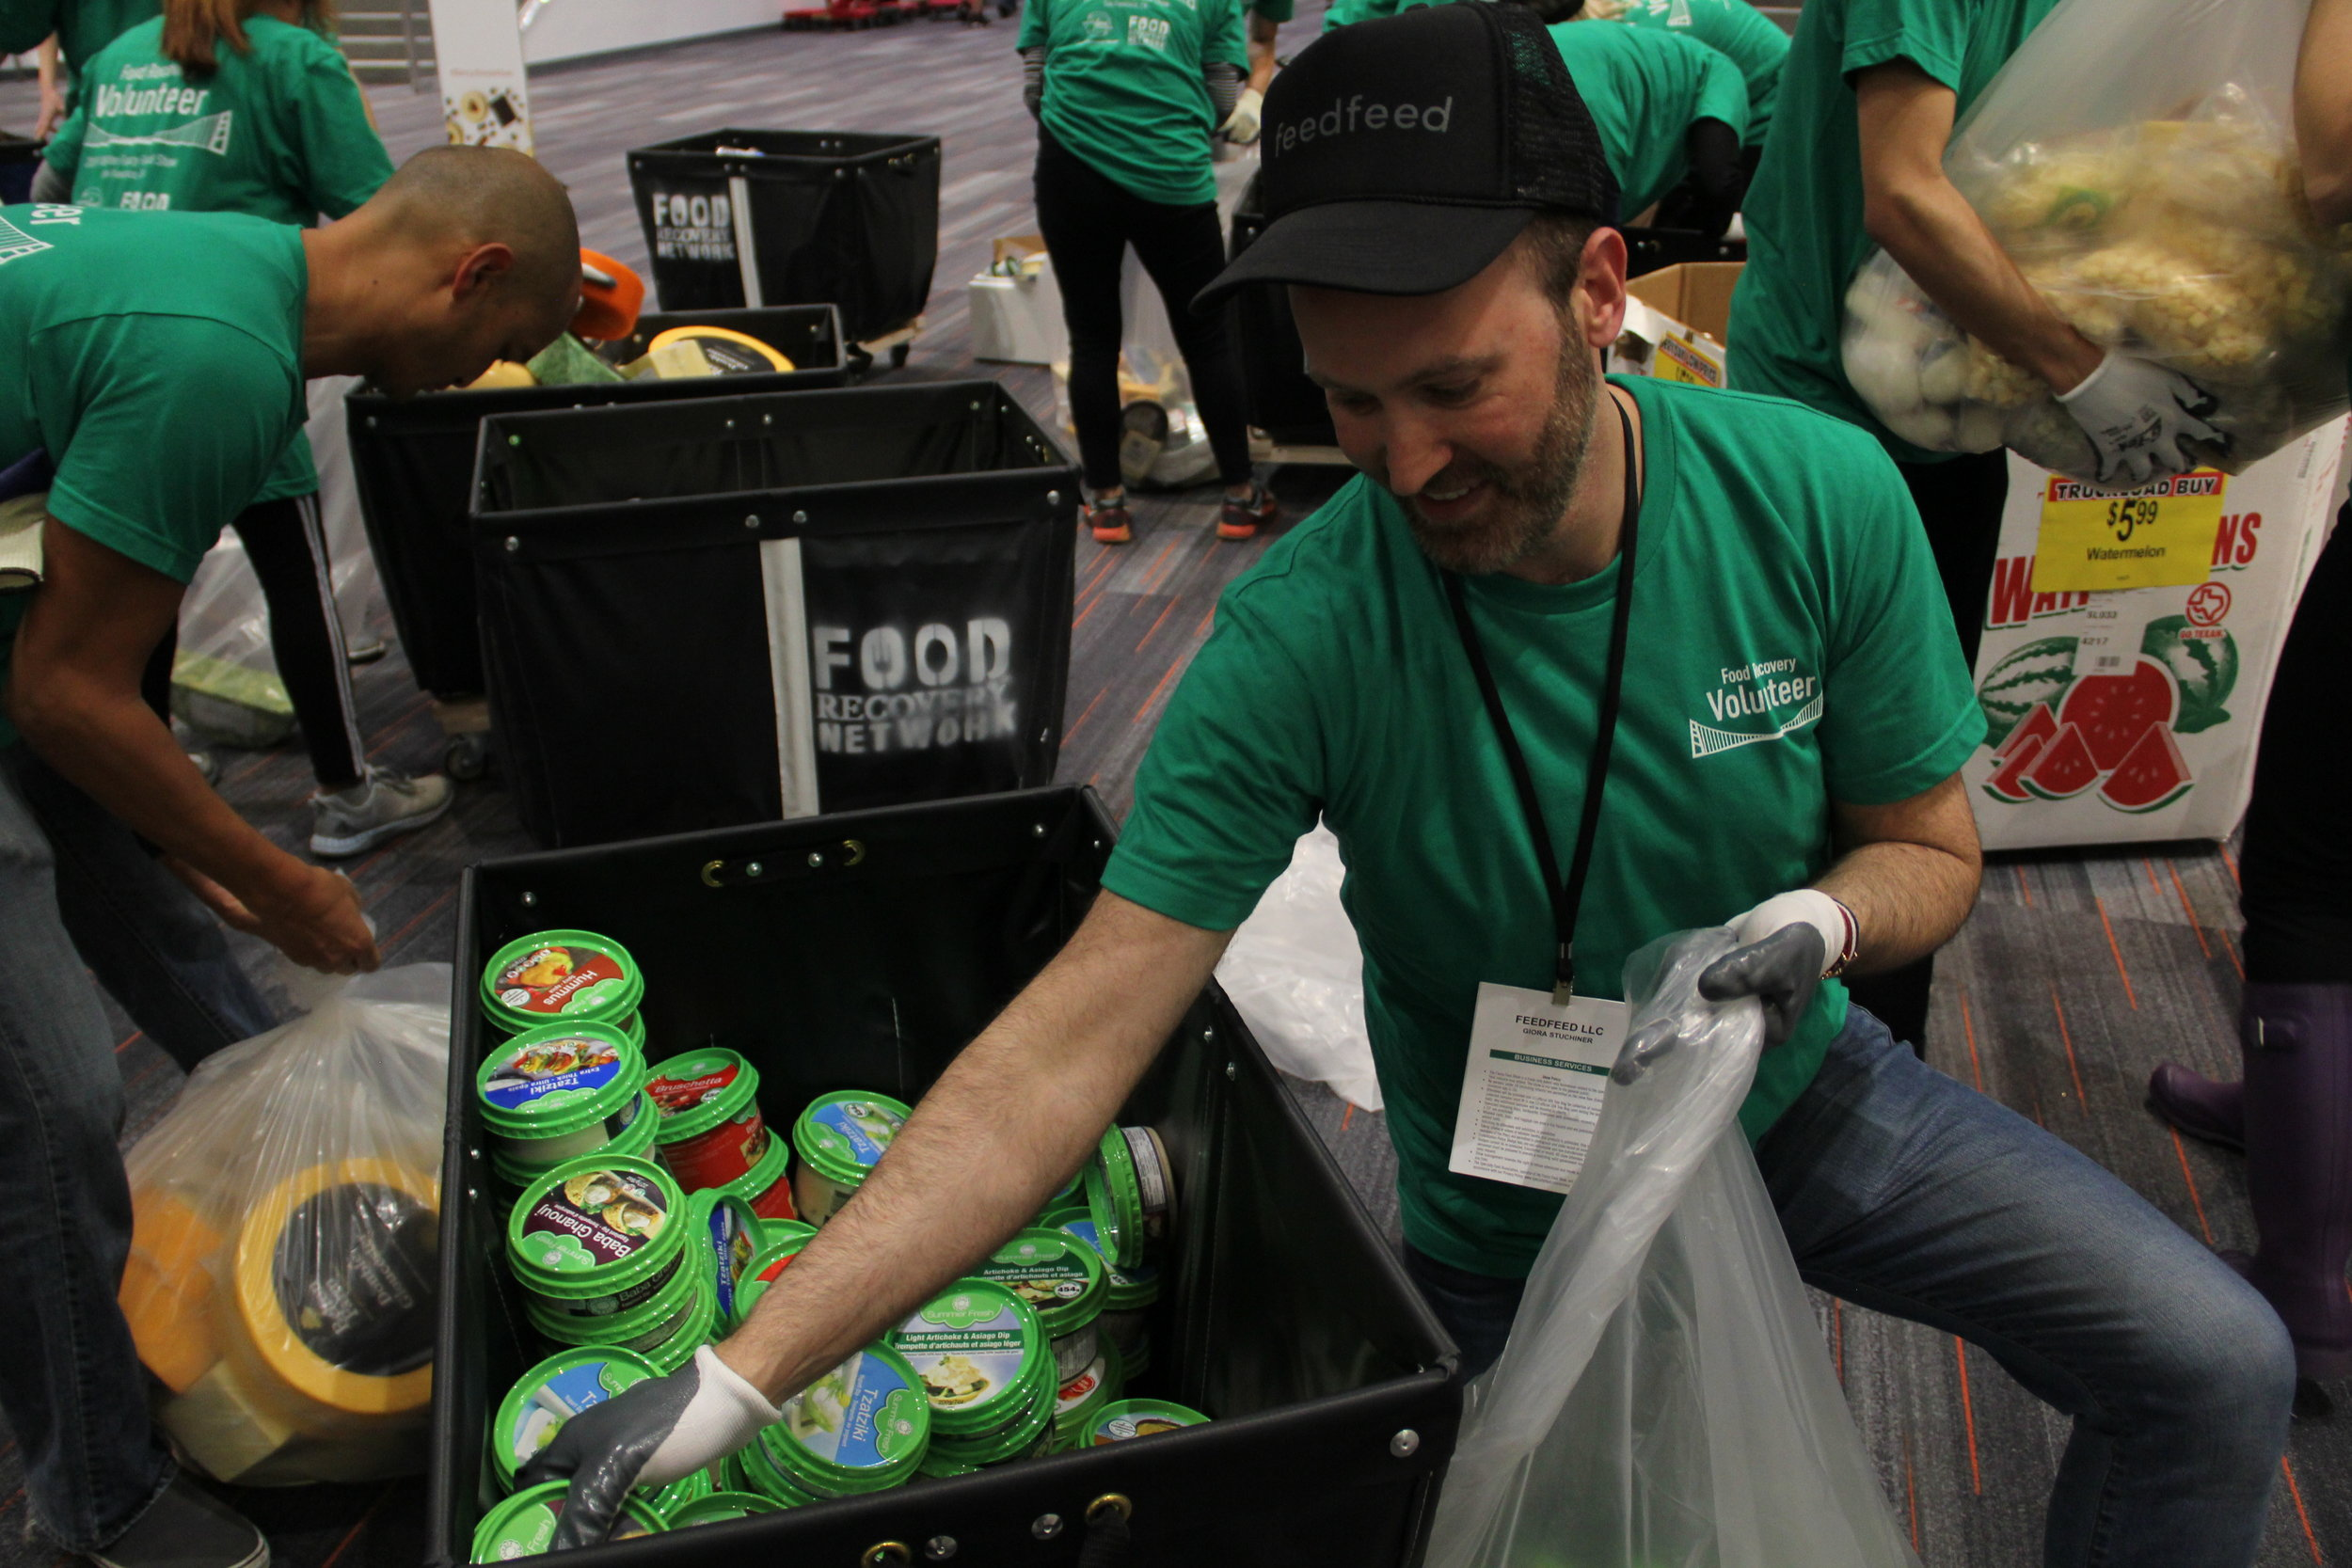 Giora Stuchiner, Art Director at Feedfeed, organizes perishable food items in the South Hall Consolidation Zone.